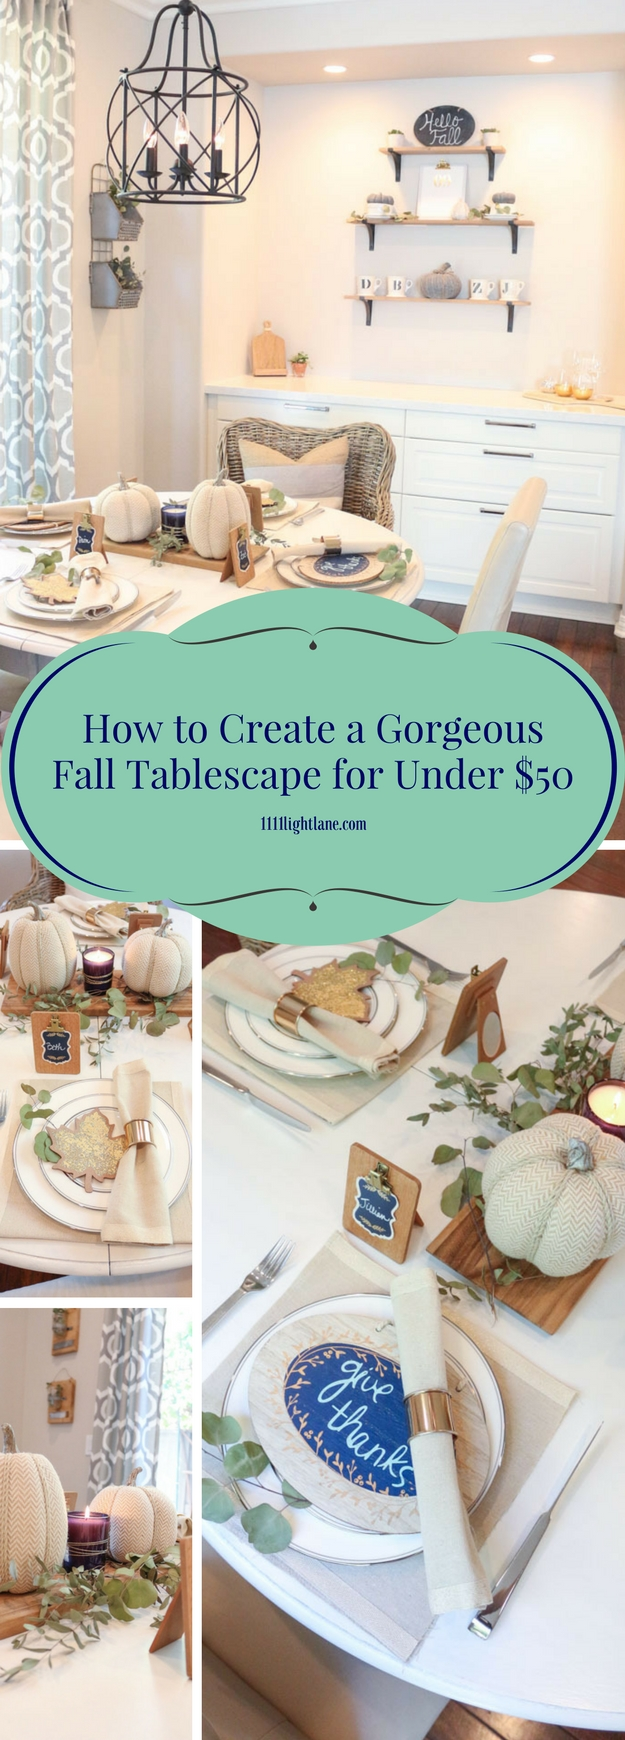 how-to-create-a-fall-tablescape-for-under-50